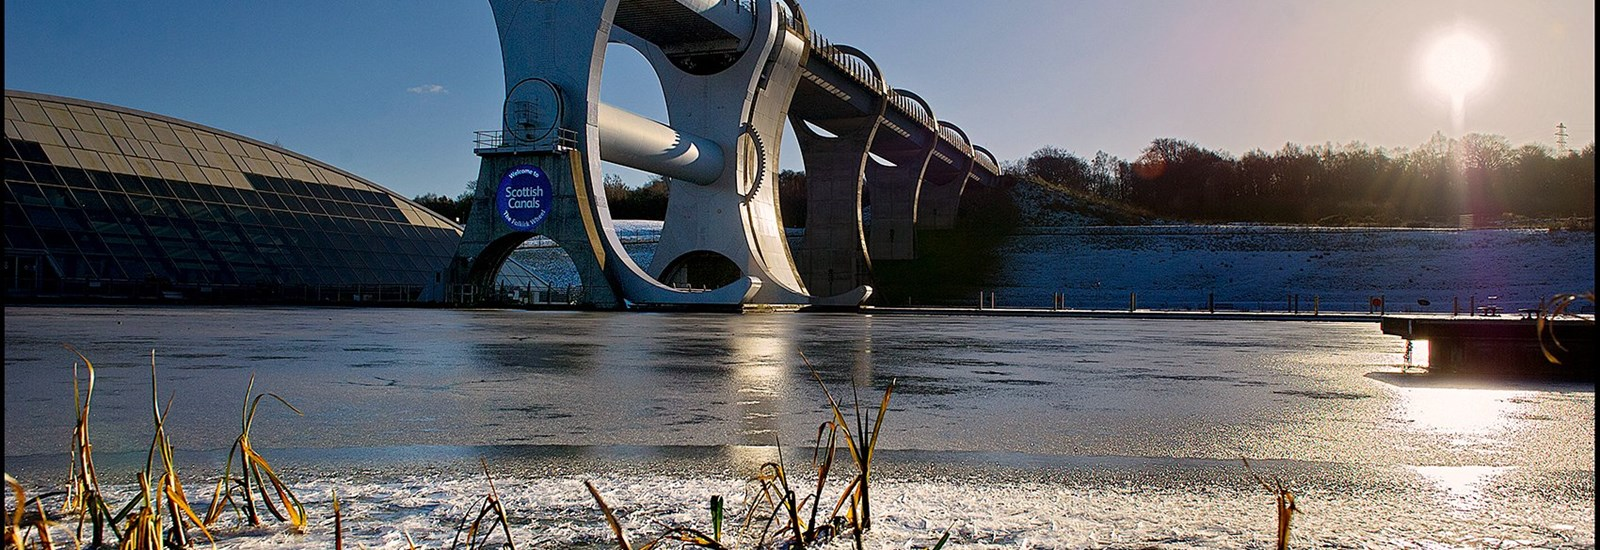 The Falkirk Wheel Snow